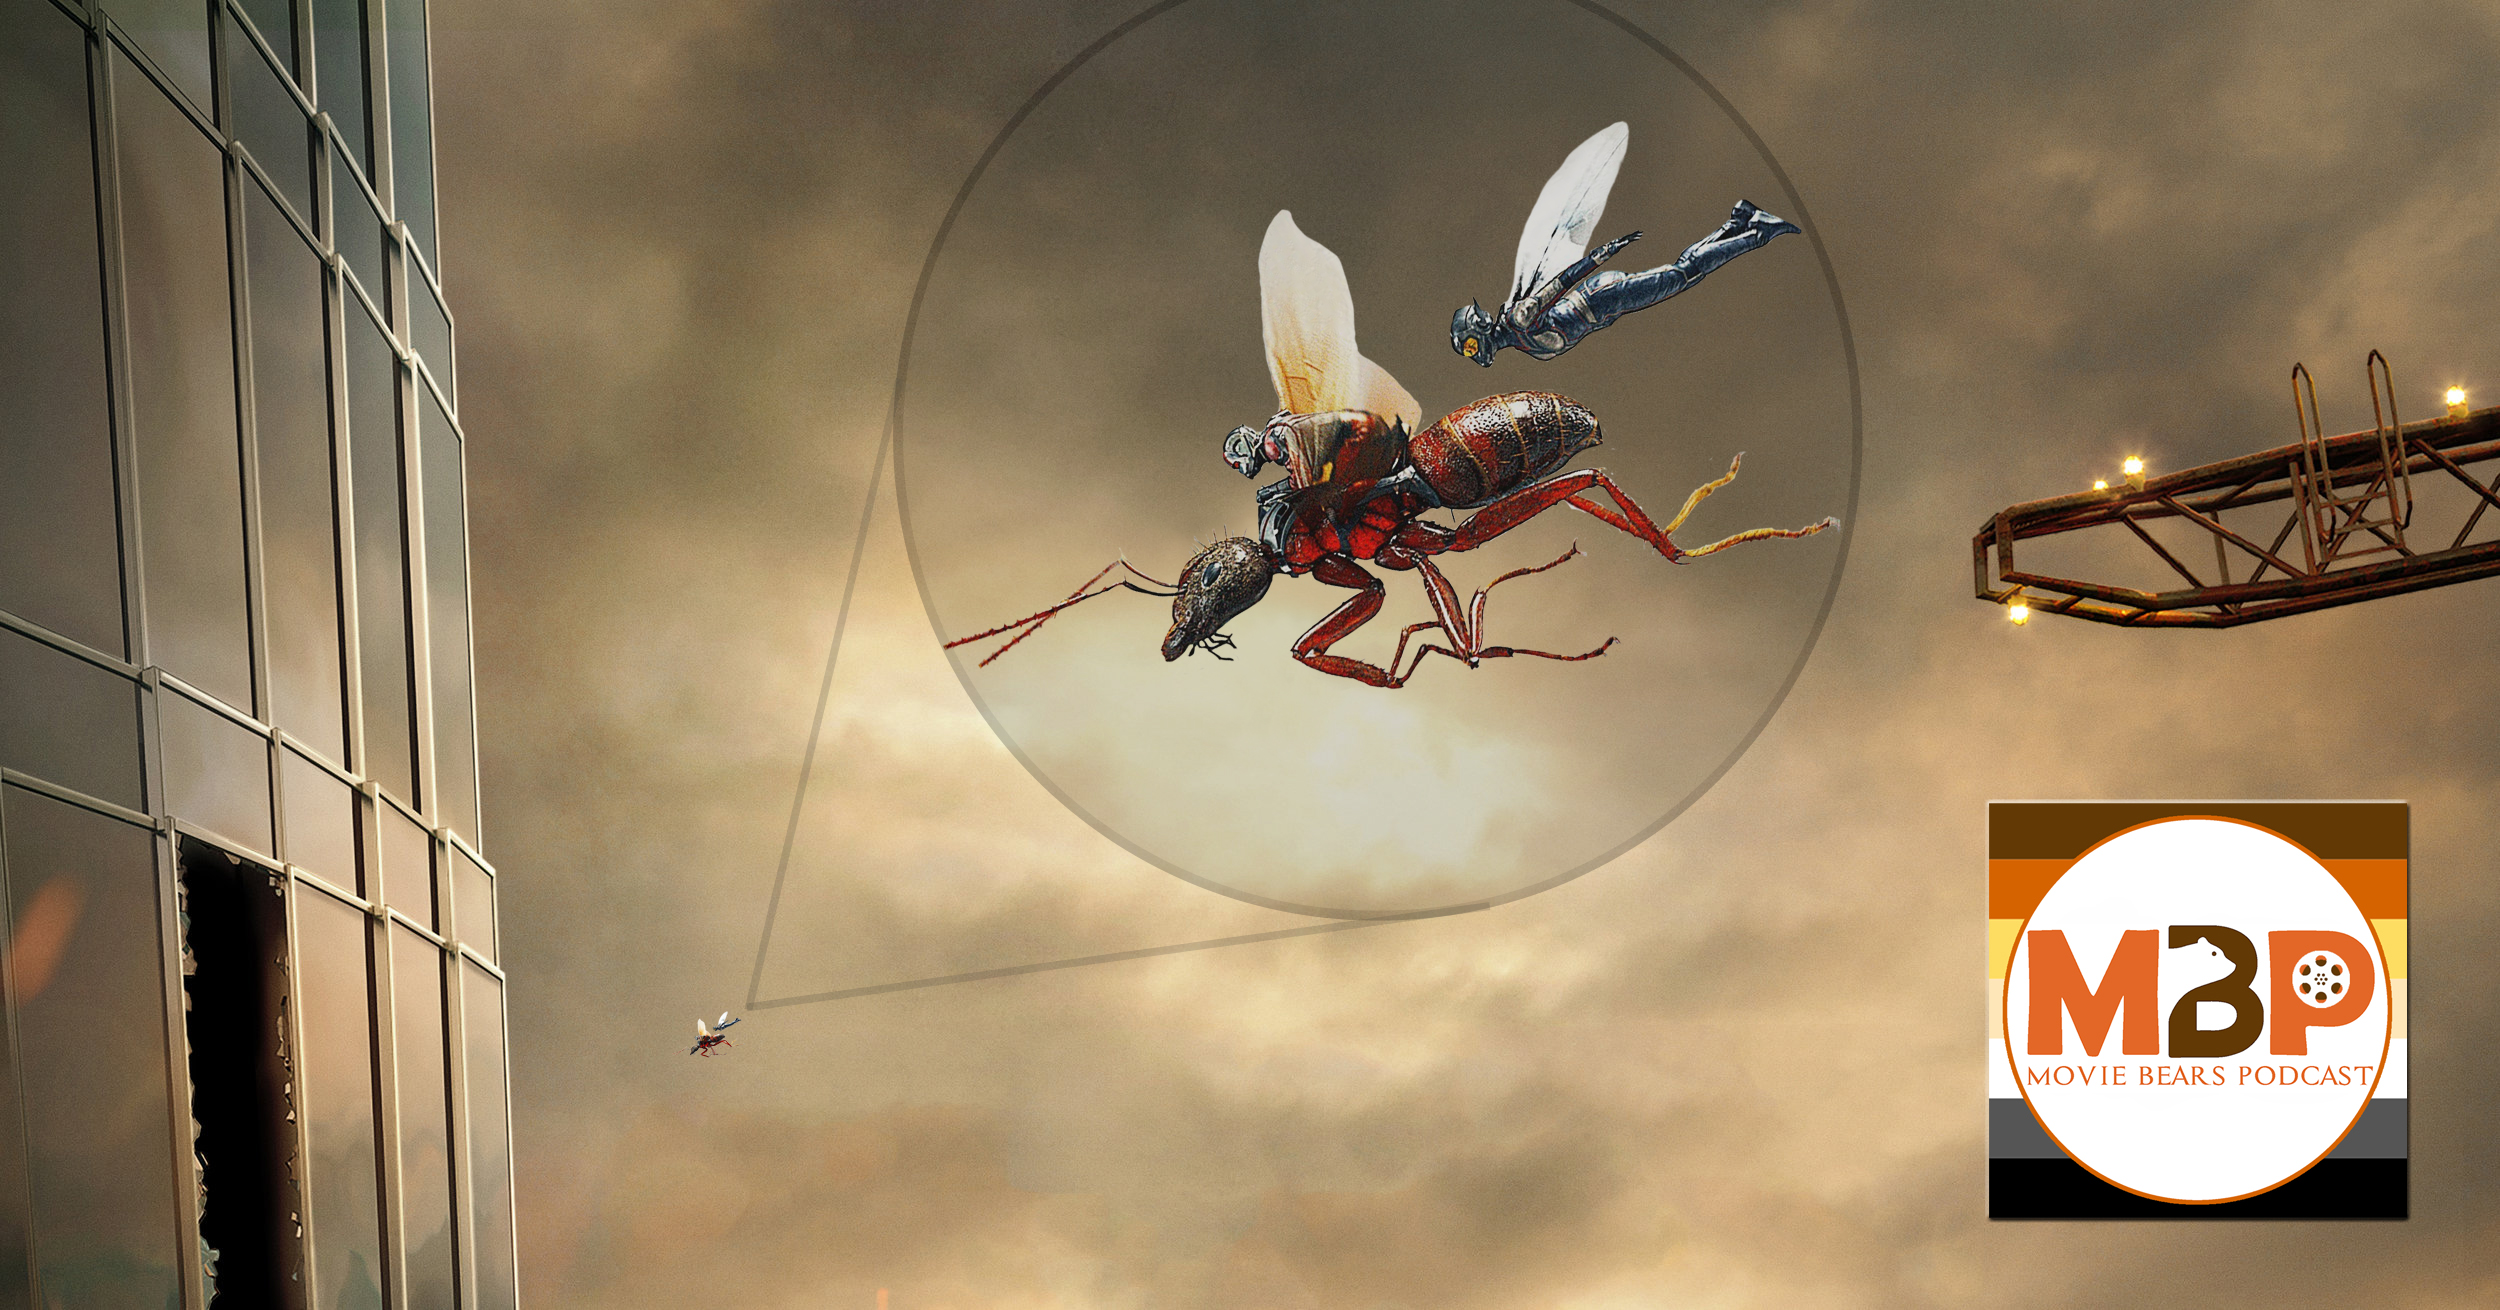 MBP e288 - 'Ant-Man and The Wasp' and 'Skyscraper' (7/17/18)     We're really playing with scale on this episode of the Movie Bears Podcast! First, we get itsy-bitsy with 'Ant-Man and The Wasp,' the latest Marvel Cinematic Universe superhero offering. Then, we help Dwayne Johnson scale to the top of a massive building in the action-packed 'Skyscraper.' Click through to give it a listen!